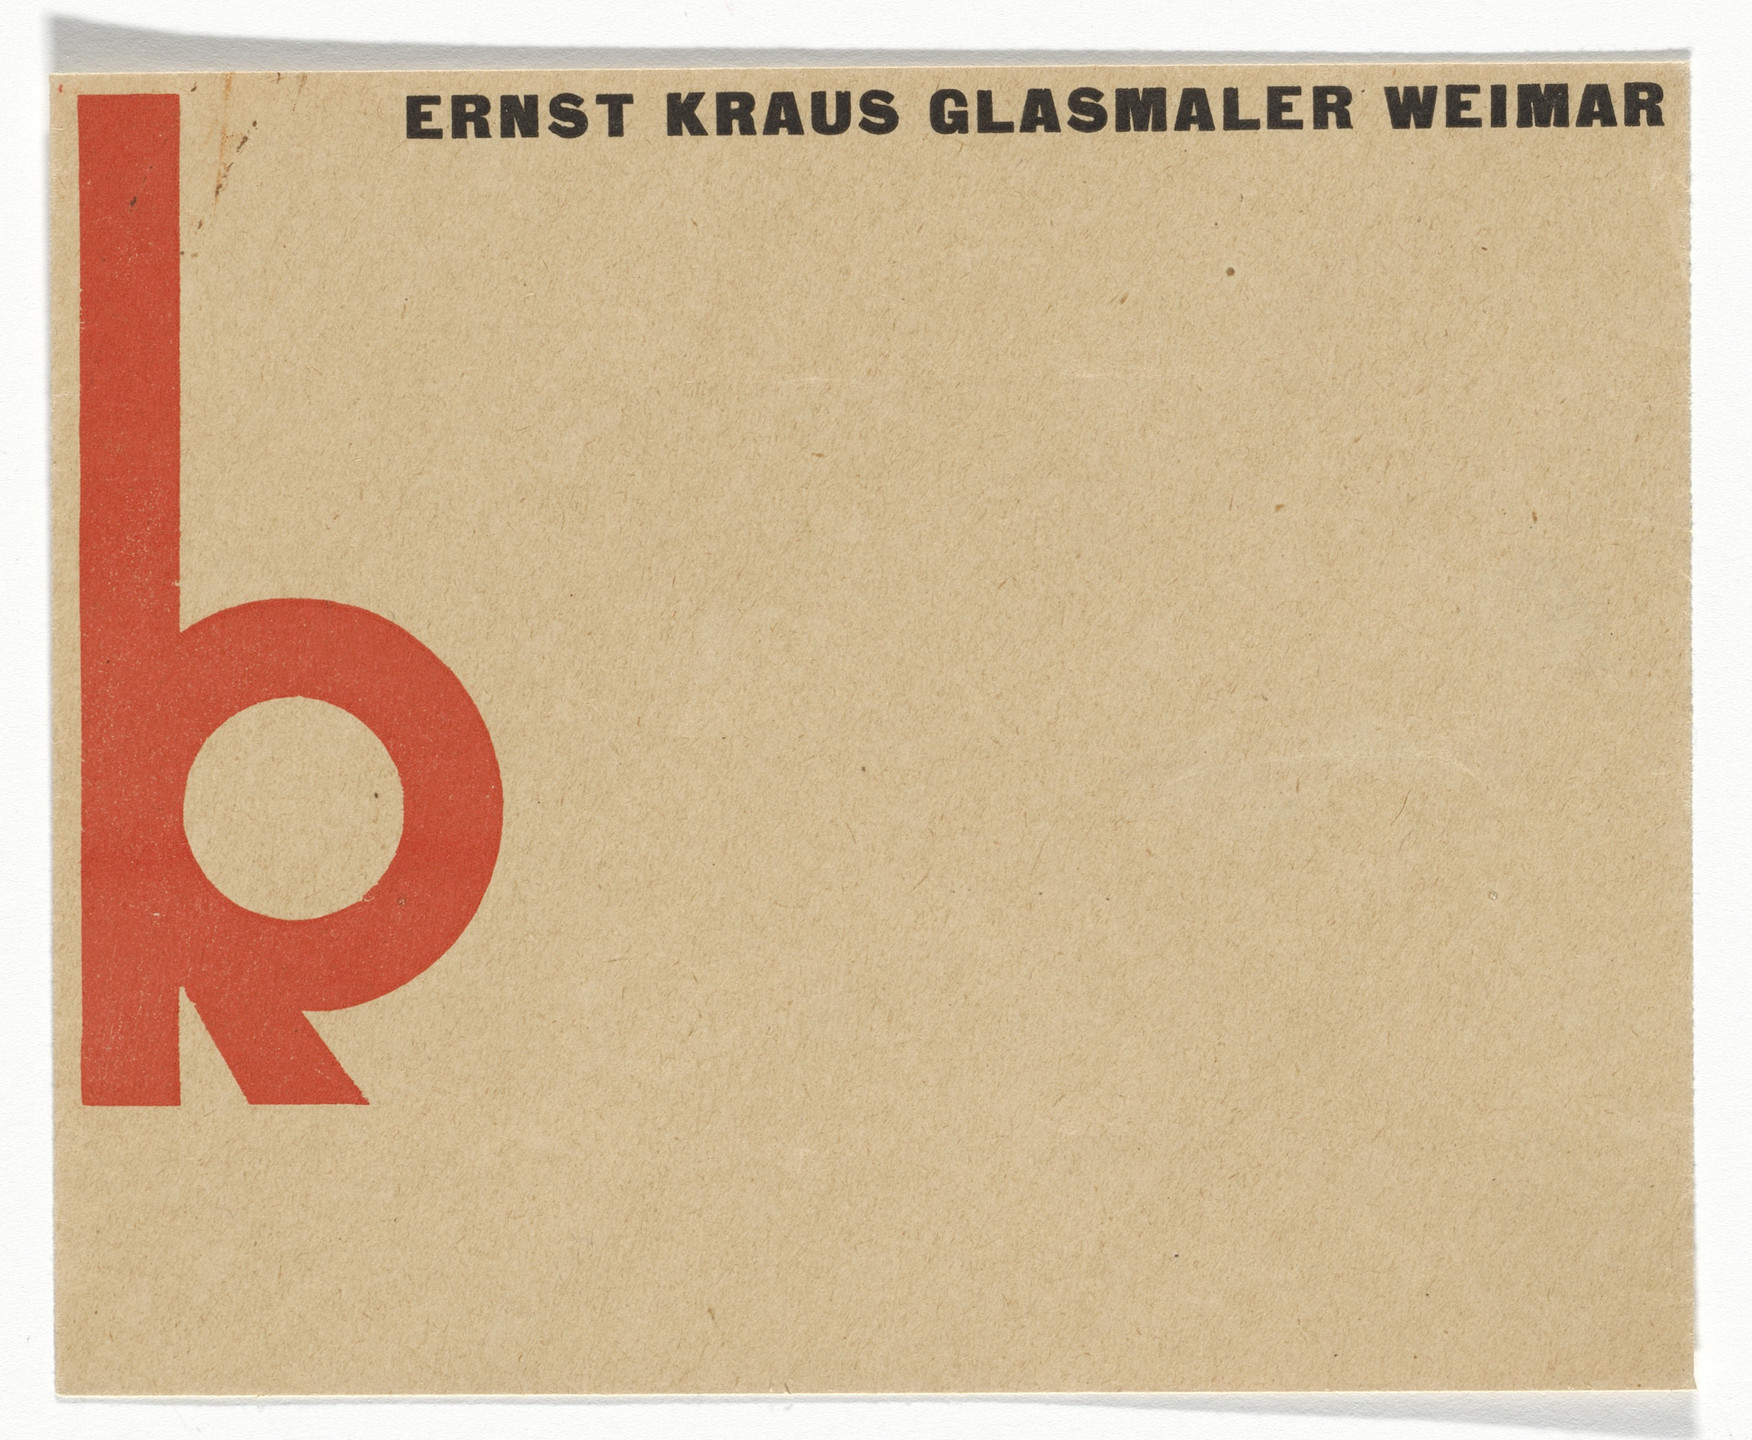 Herbert Bayer. Ernst Kraus stationery envelope. 1922